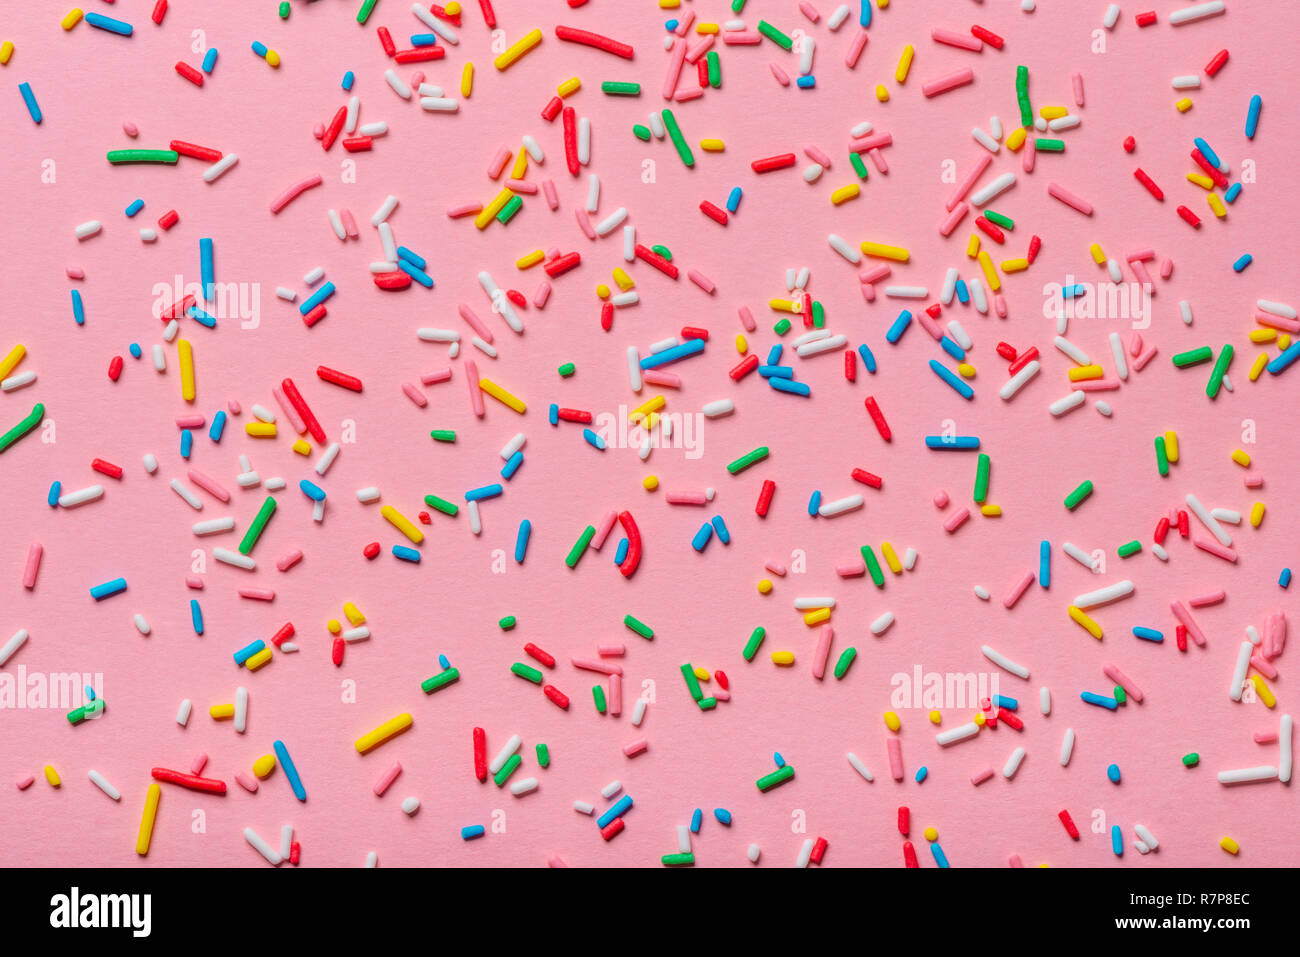 trendy pattern of colorful sprinkles over pink background